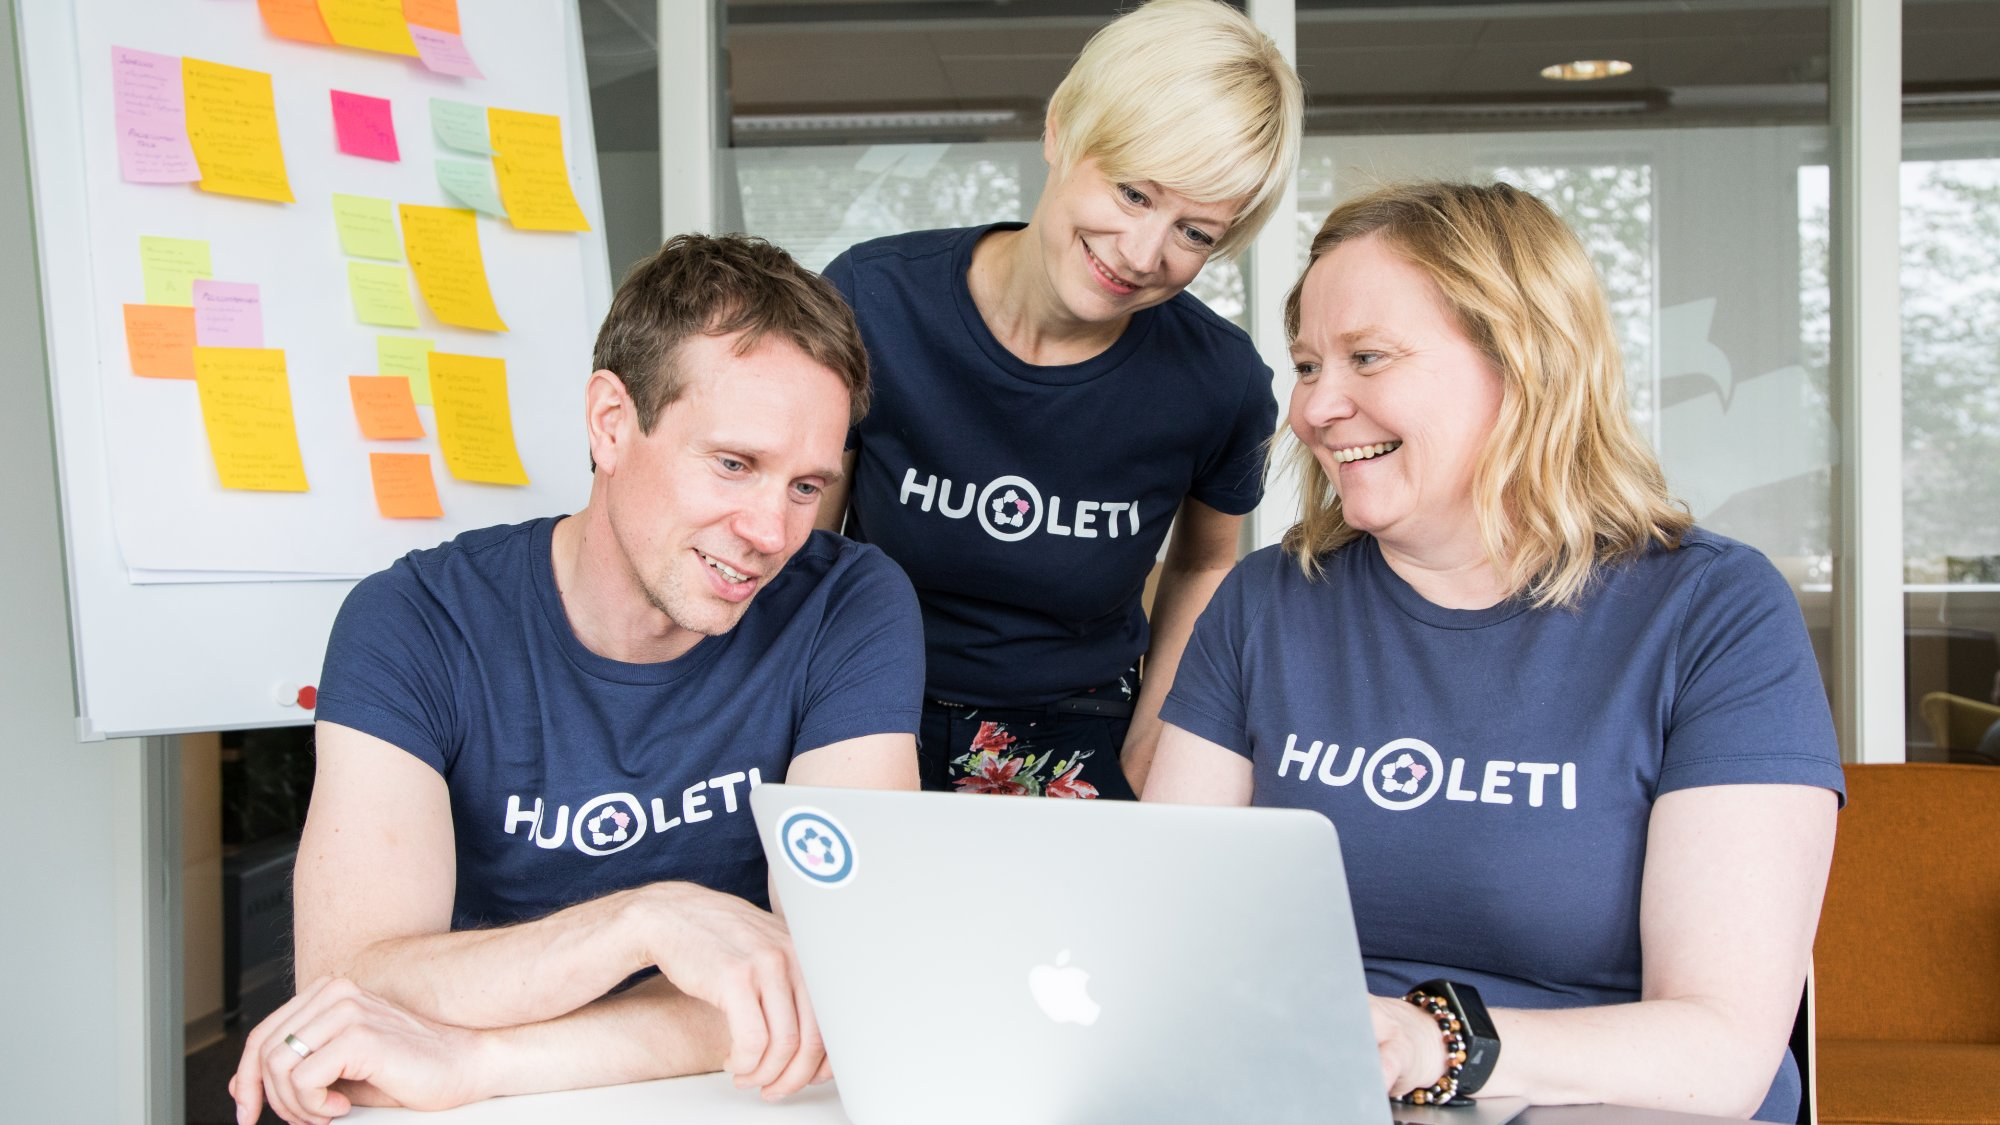 Huoleti's mobile app helps create a peer support network for people with health challenges and their loved ones.